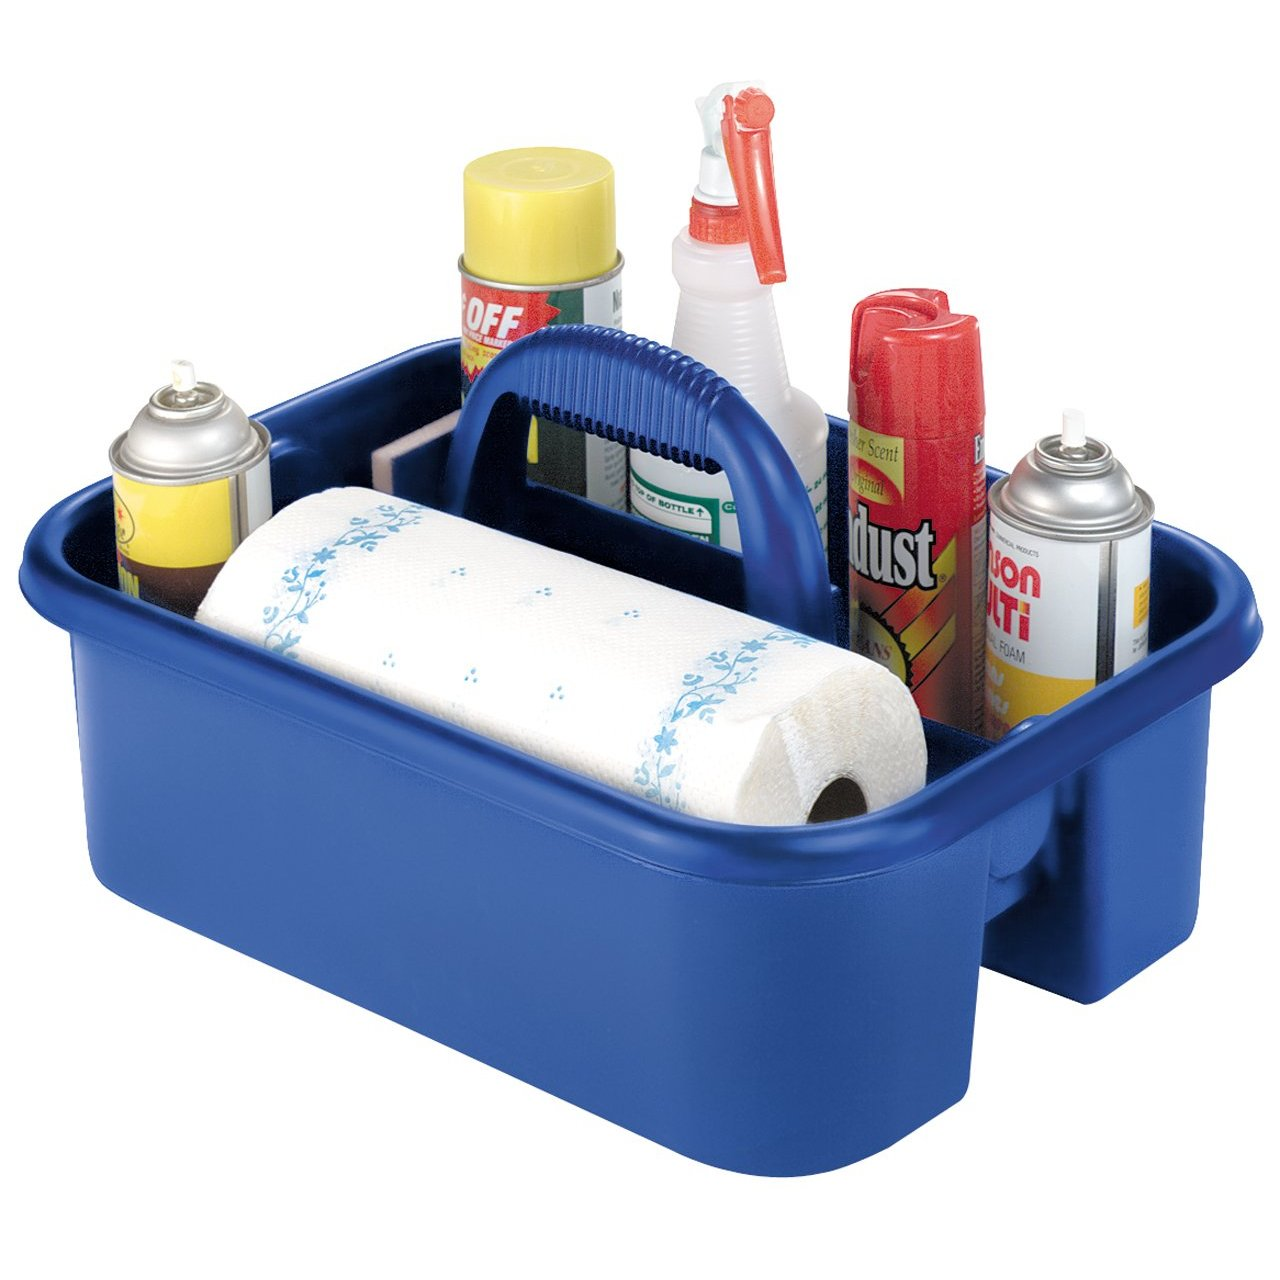 No Frill Reviews and Giveaways!: Keep Cleaning Products Organized - Tip!